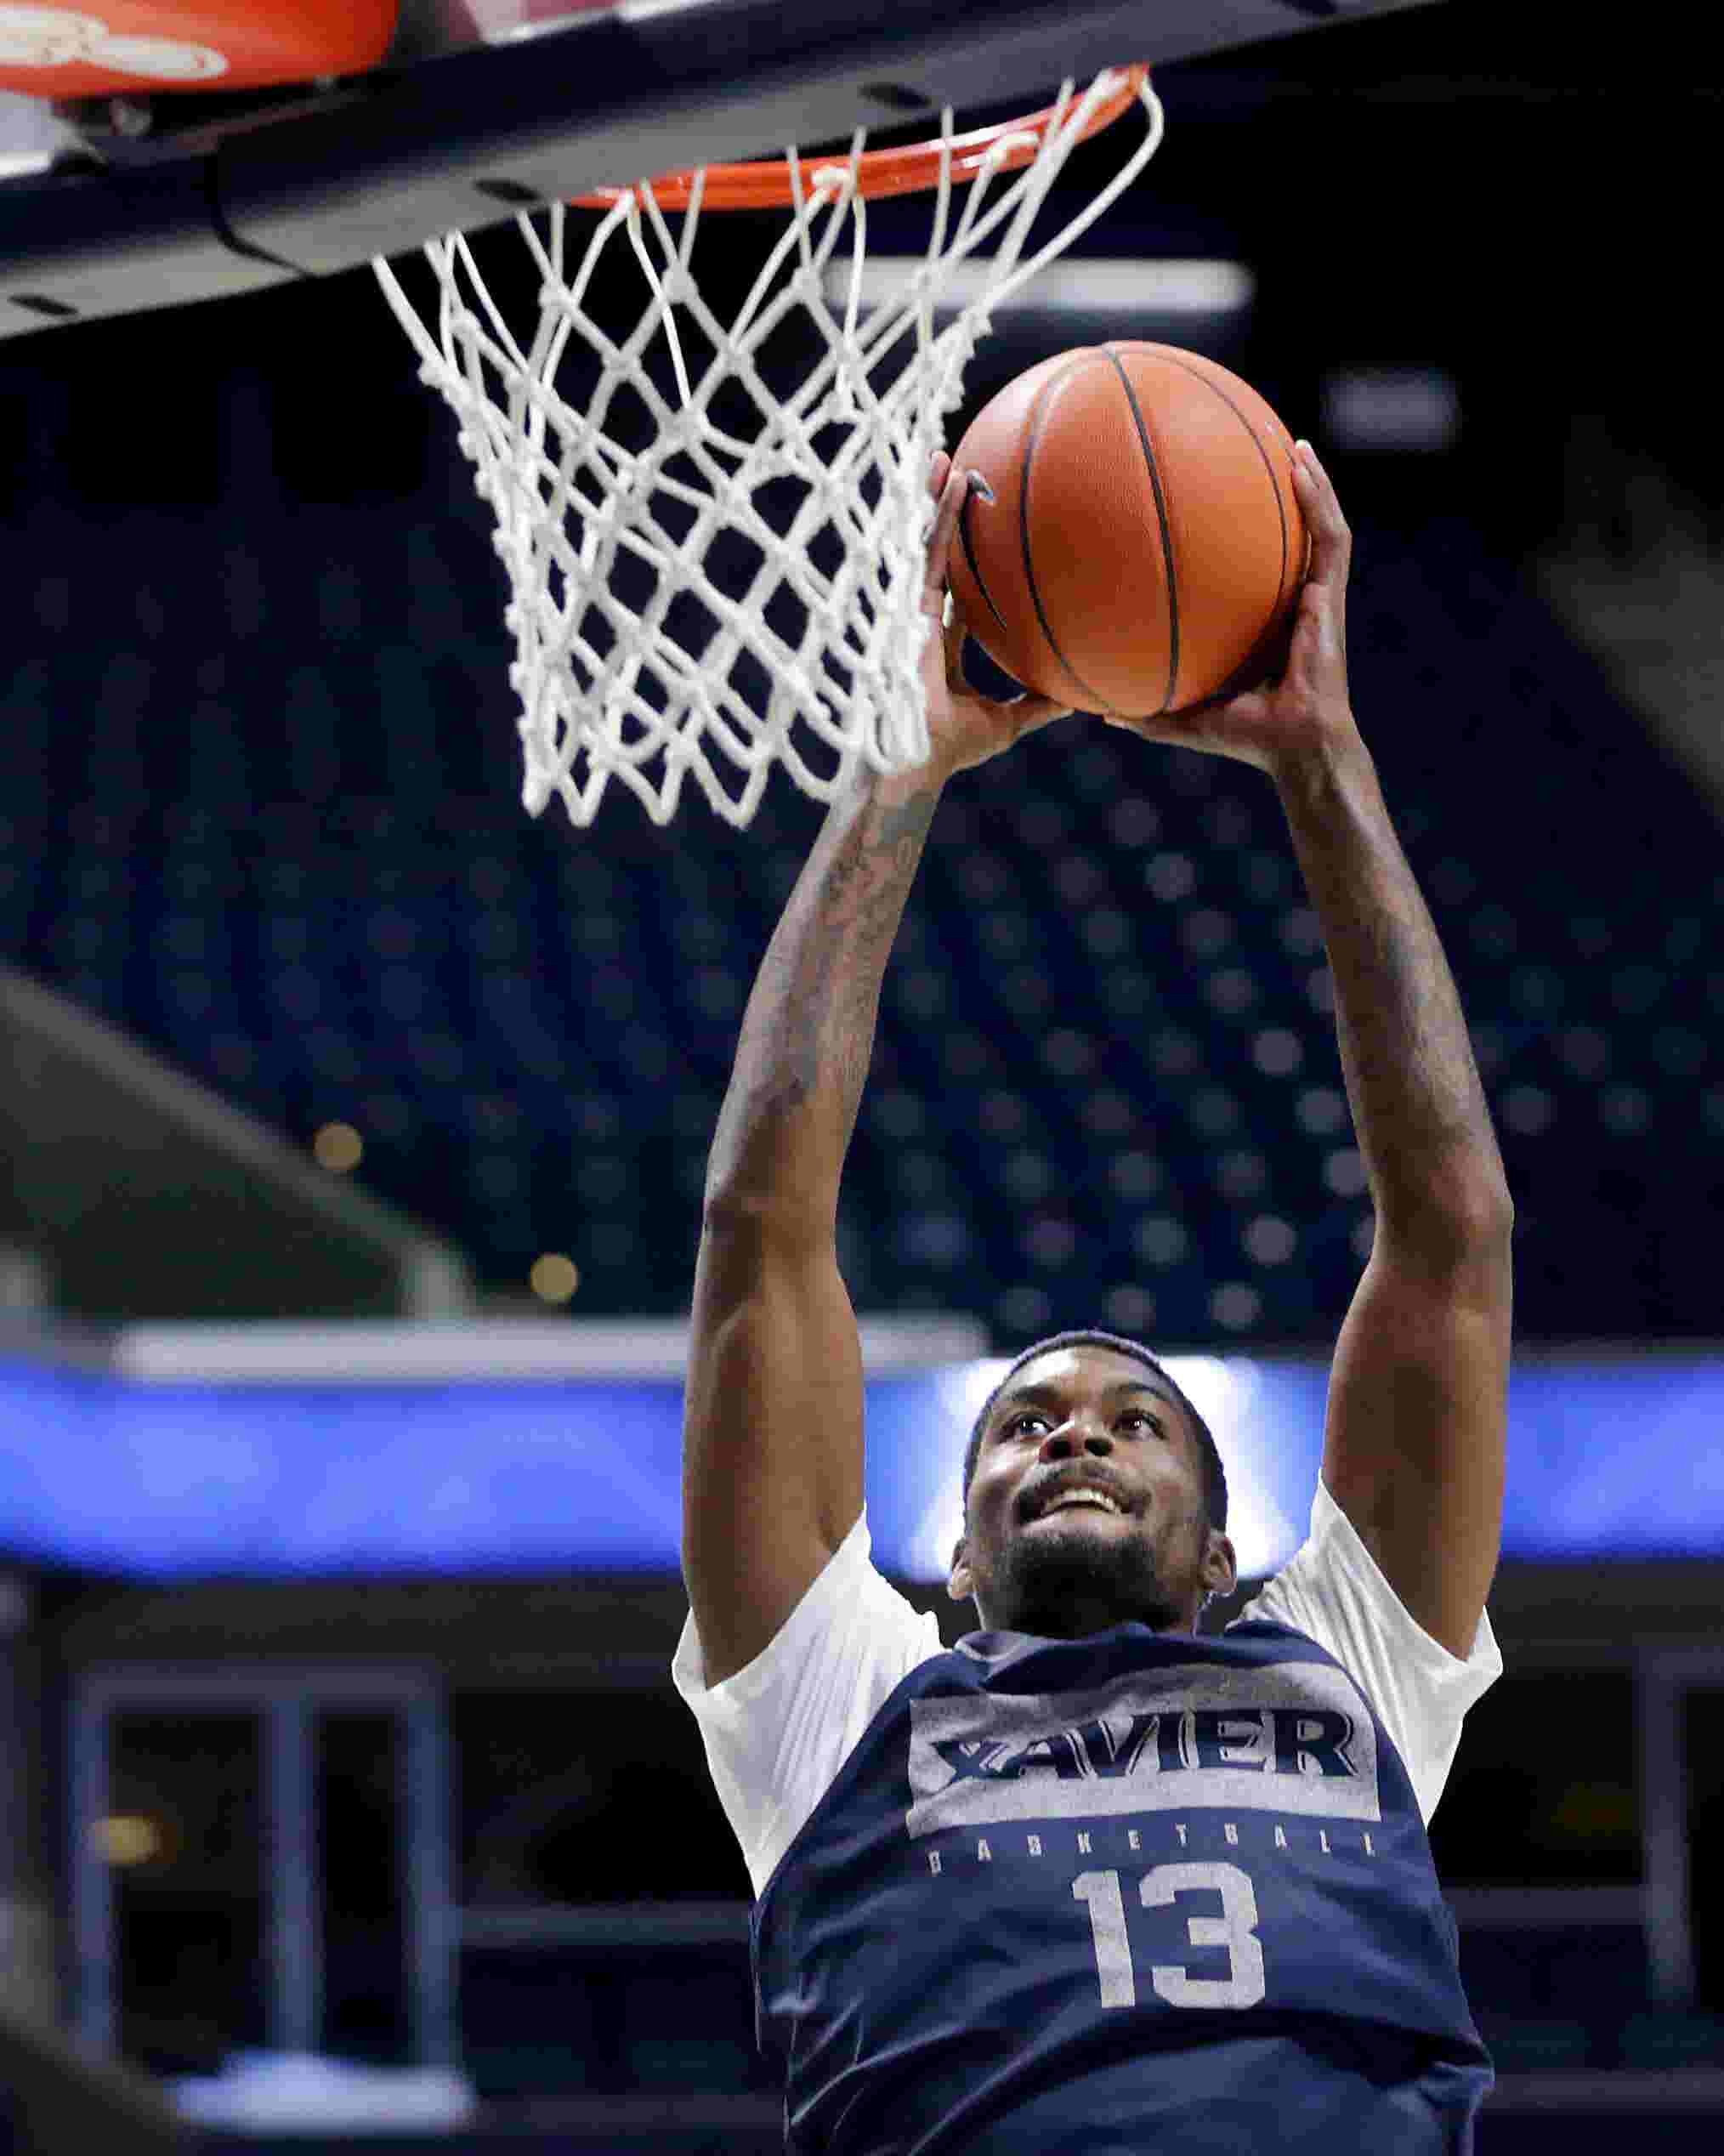 An early look at Xavier's 2019-2020 basketball lineup